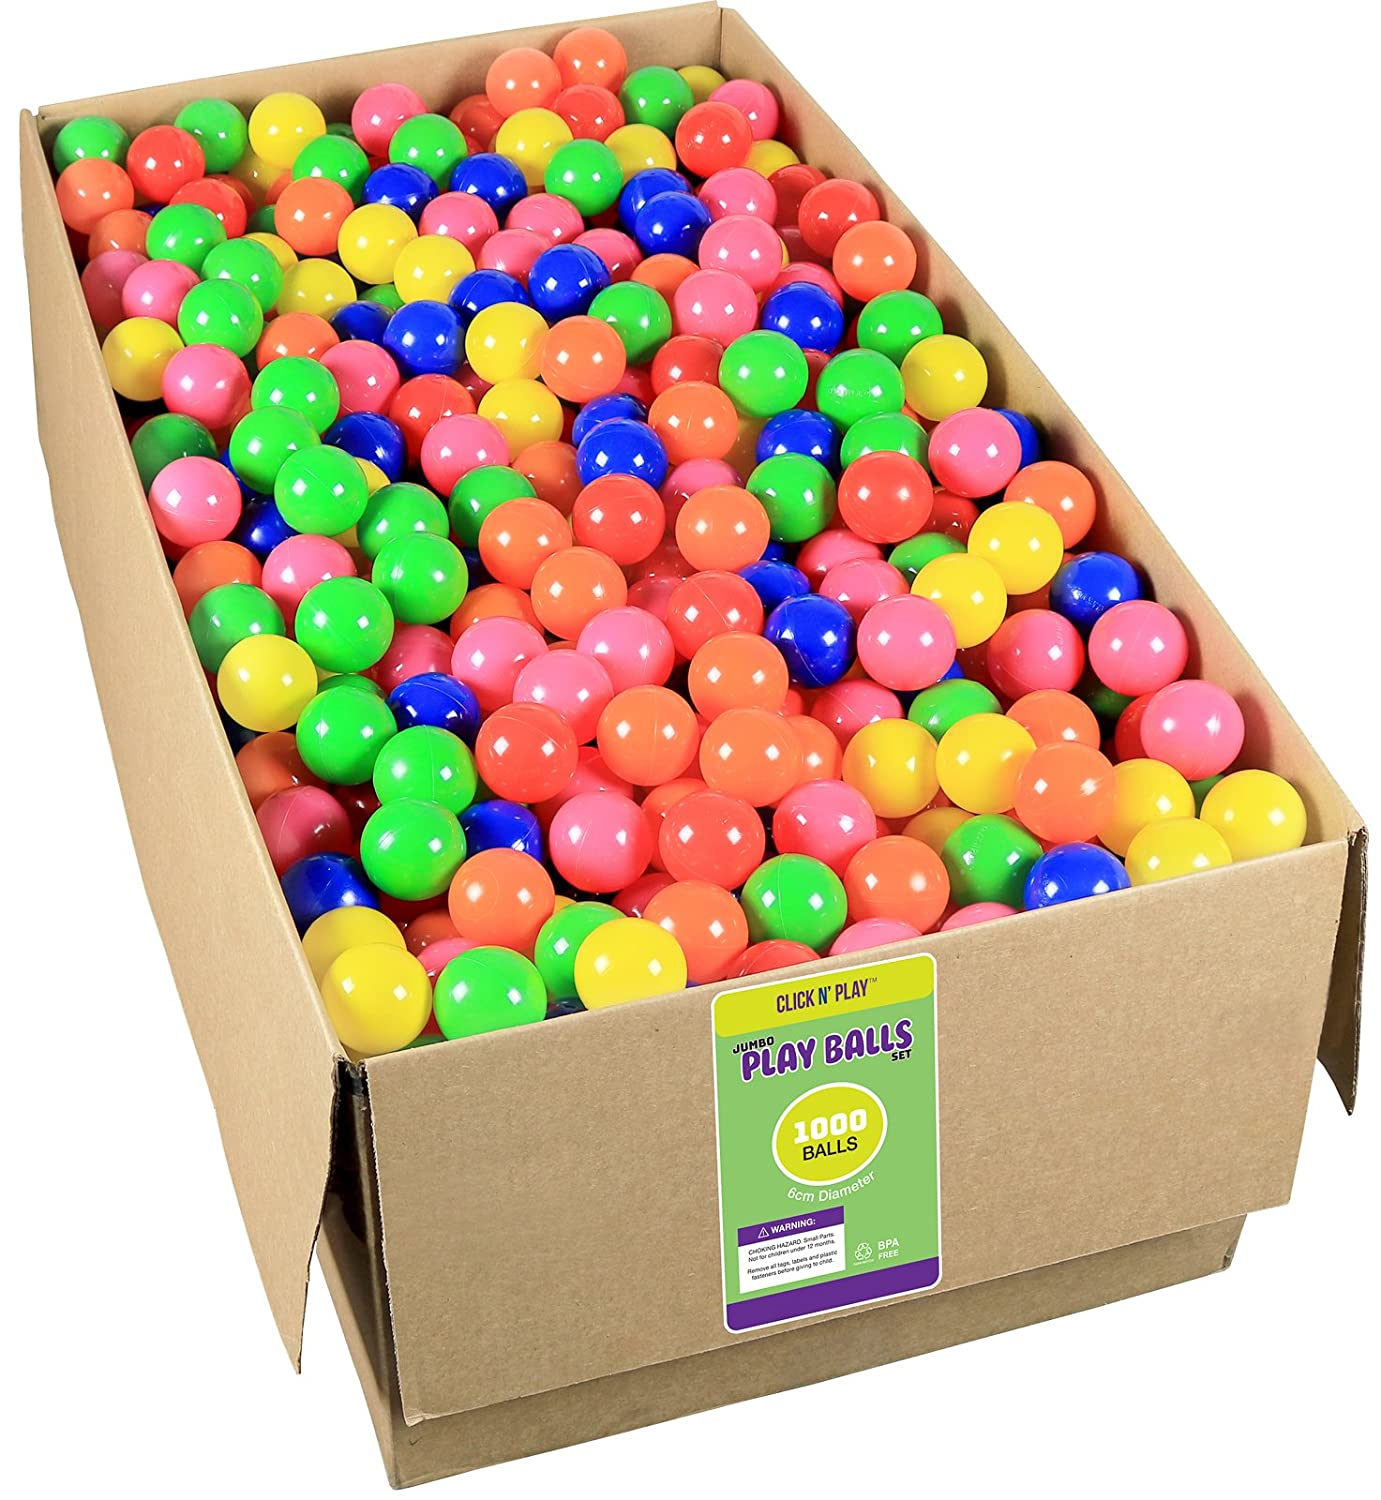 Click N' Play Value Pack 1000 Phthalate Free BPA Free Crush Proof Plastic Ball, Pit Balls 6 Bright Colors. Click N' Play CNP30213